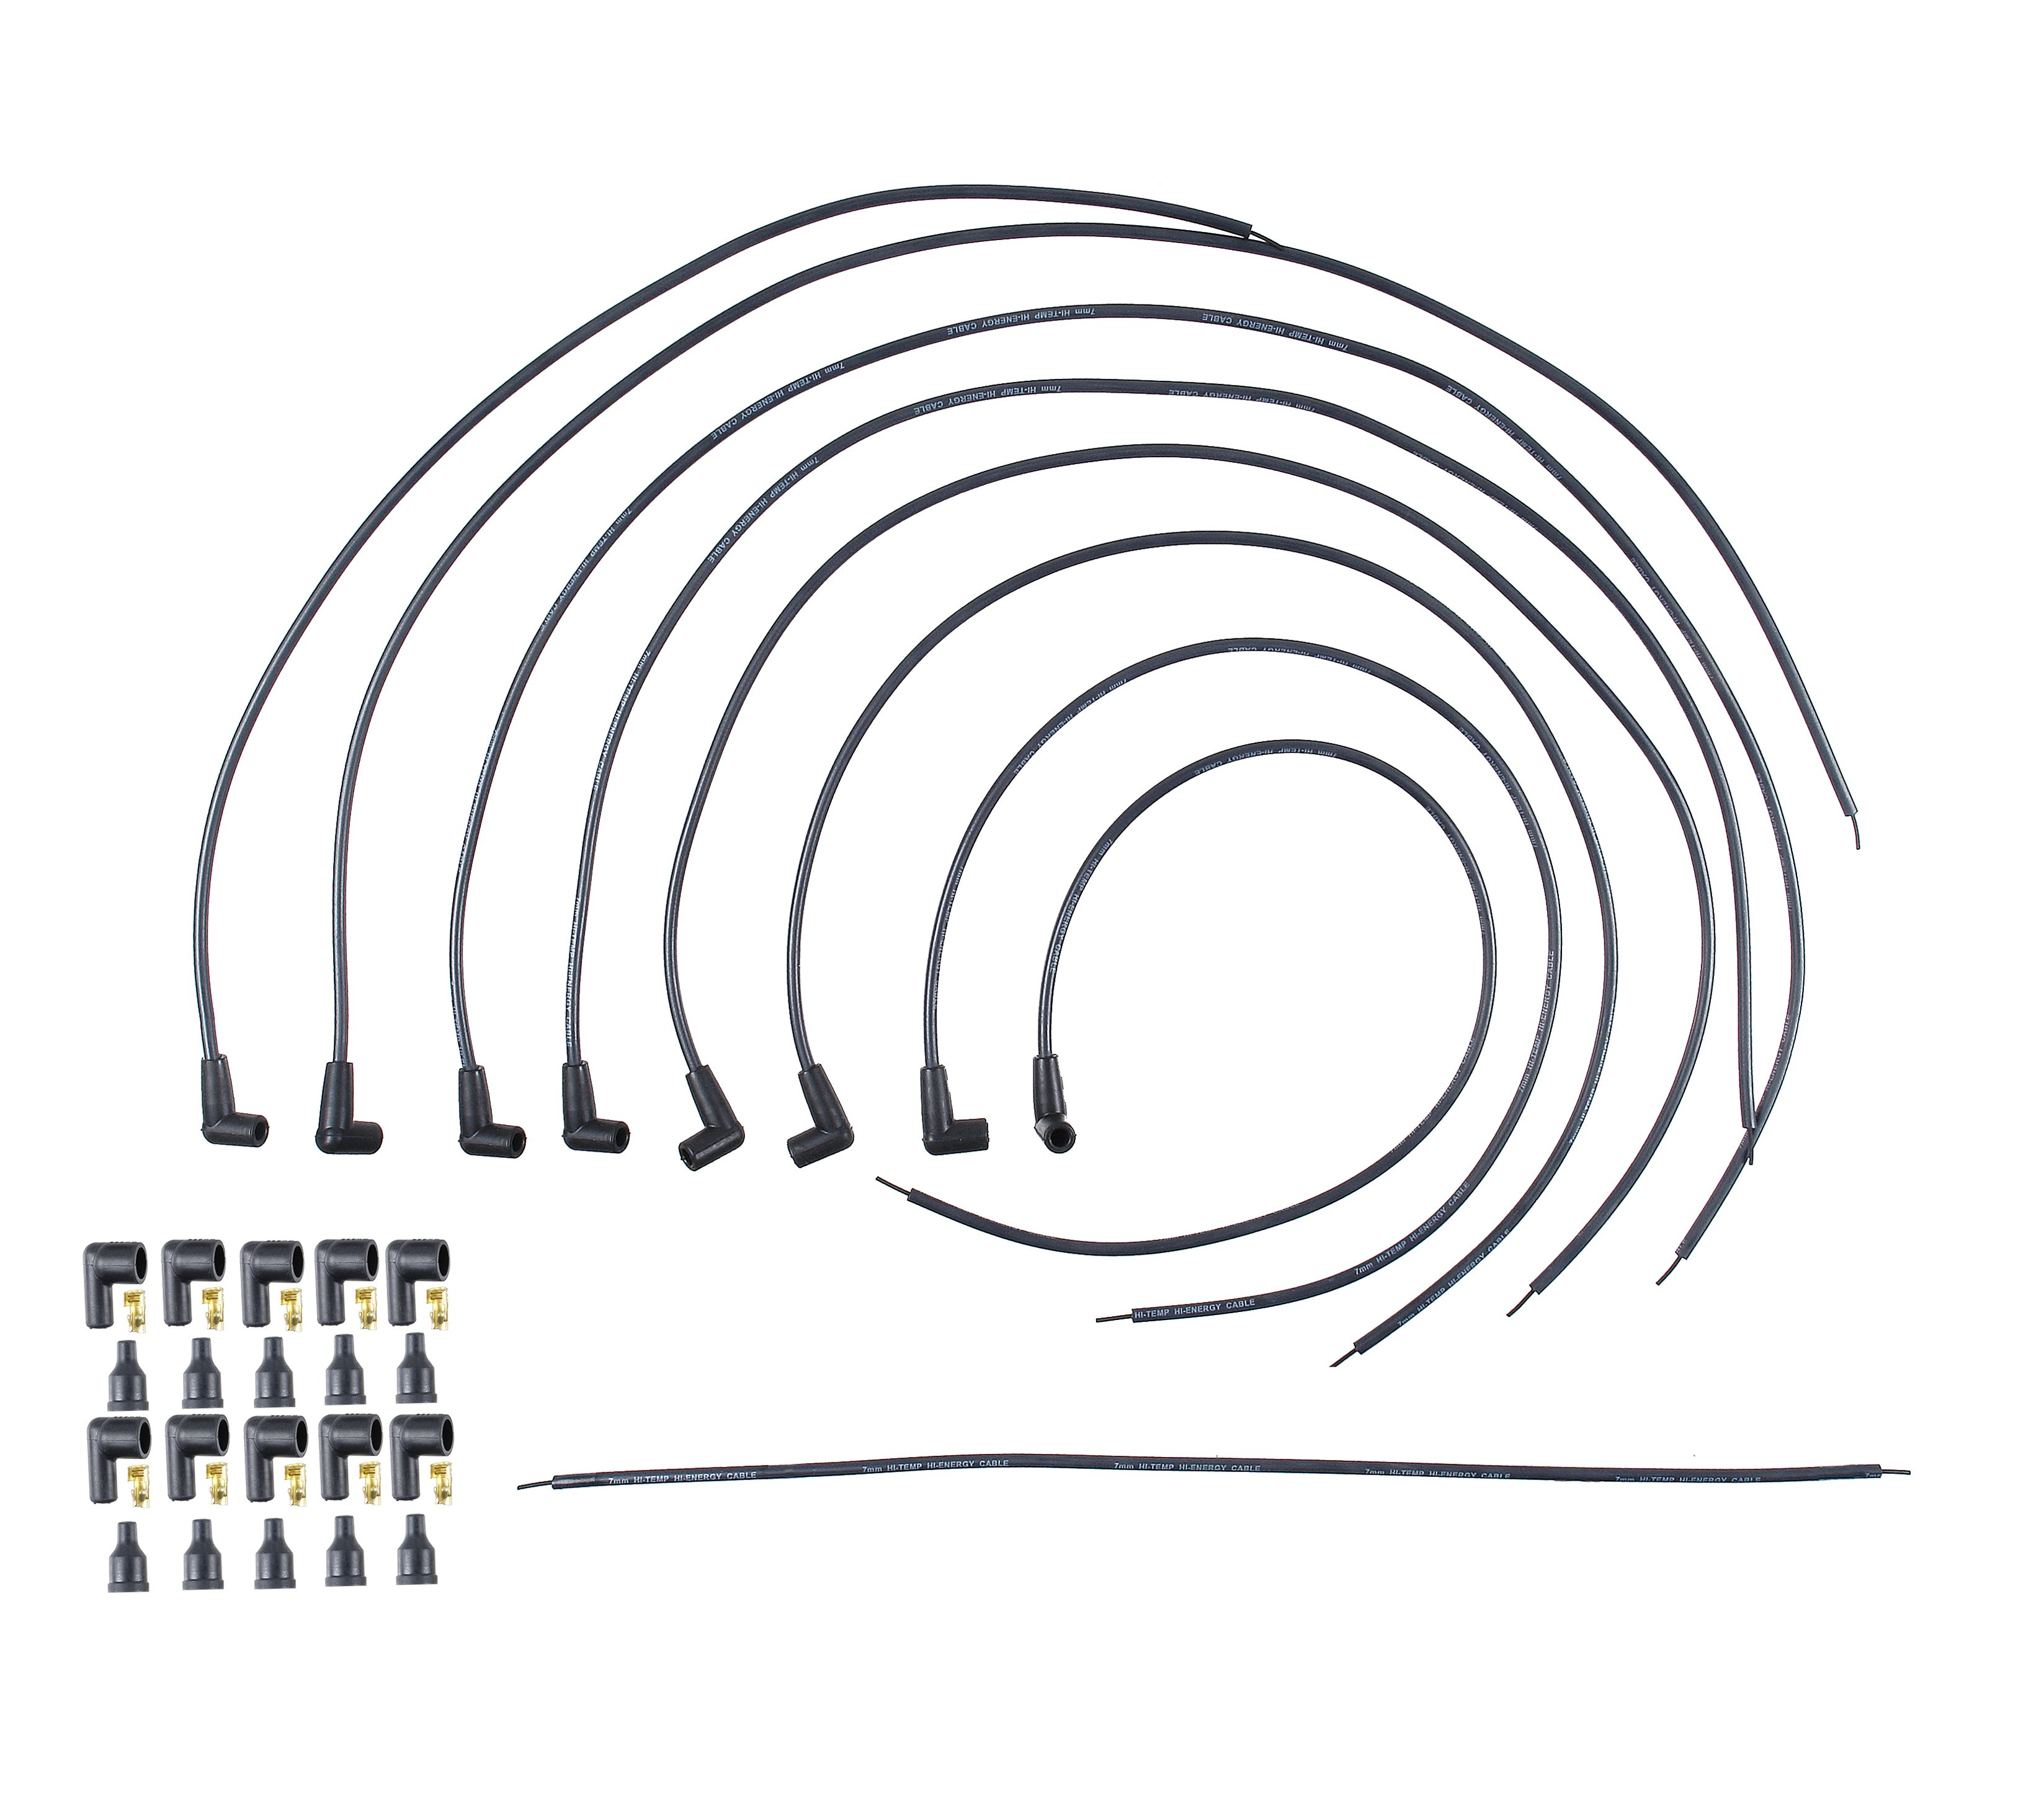 Proconnect Universal Spark Plug Wire Sets